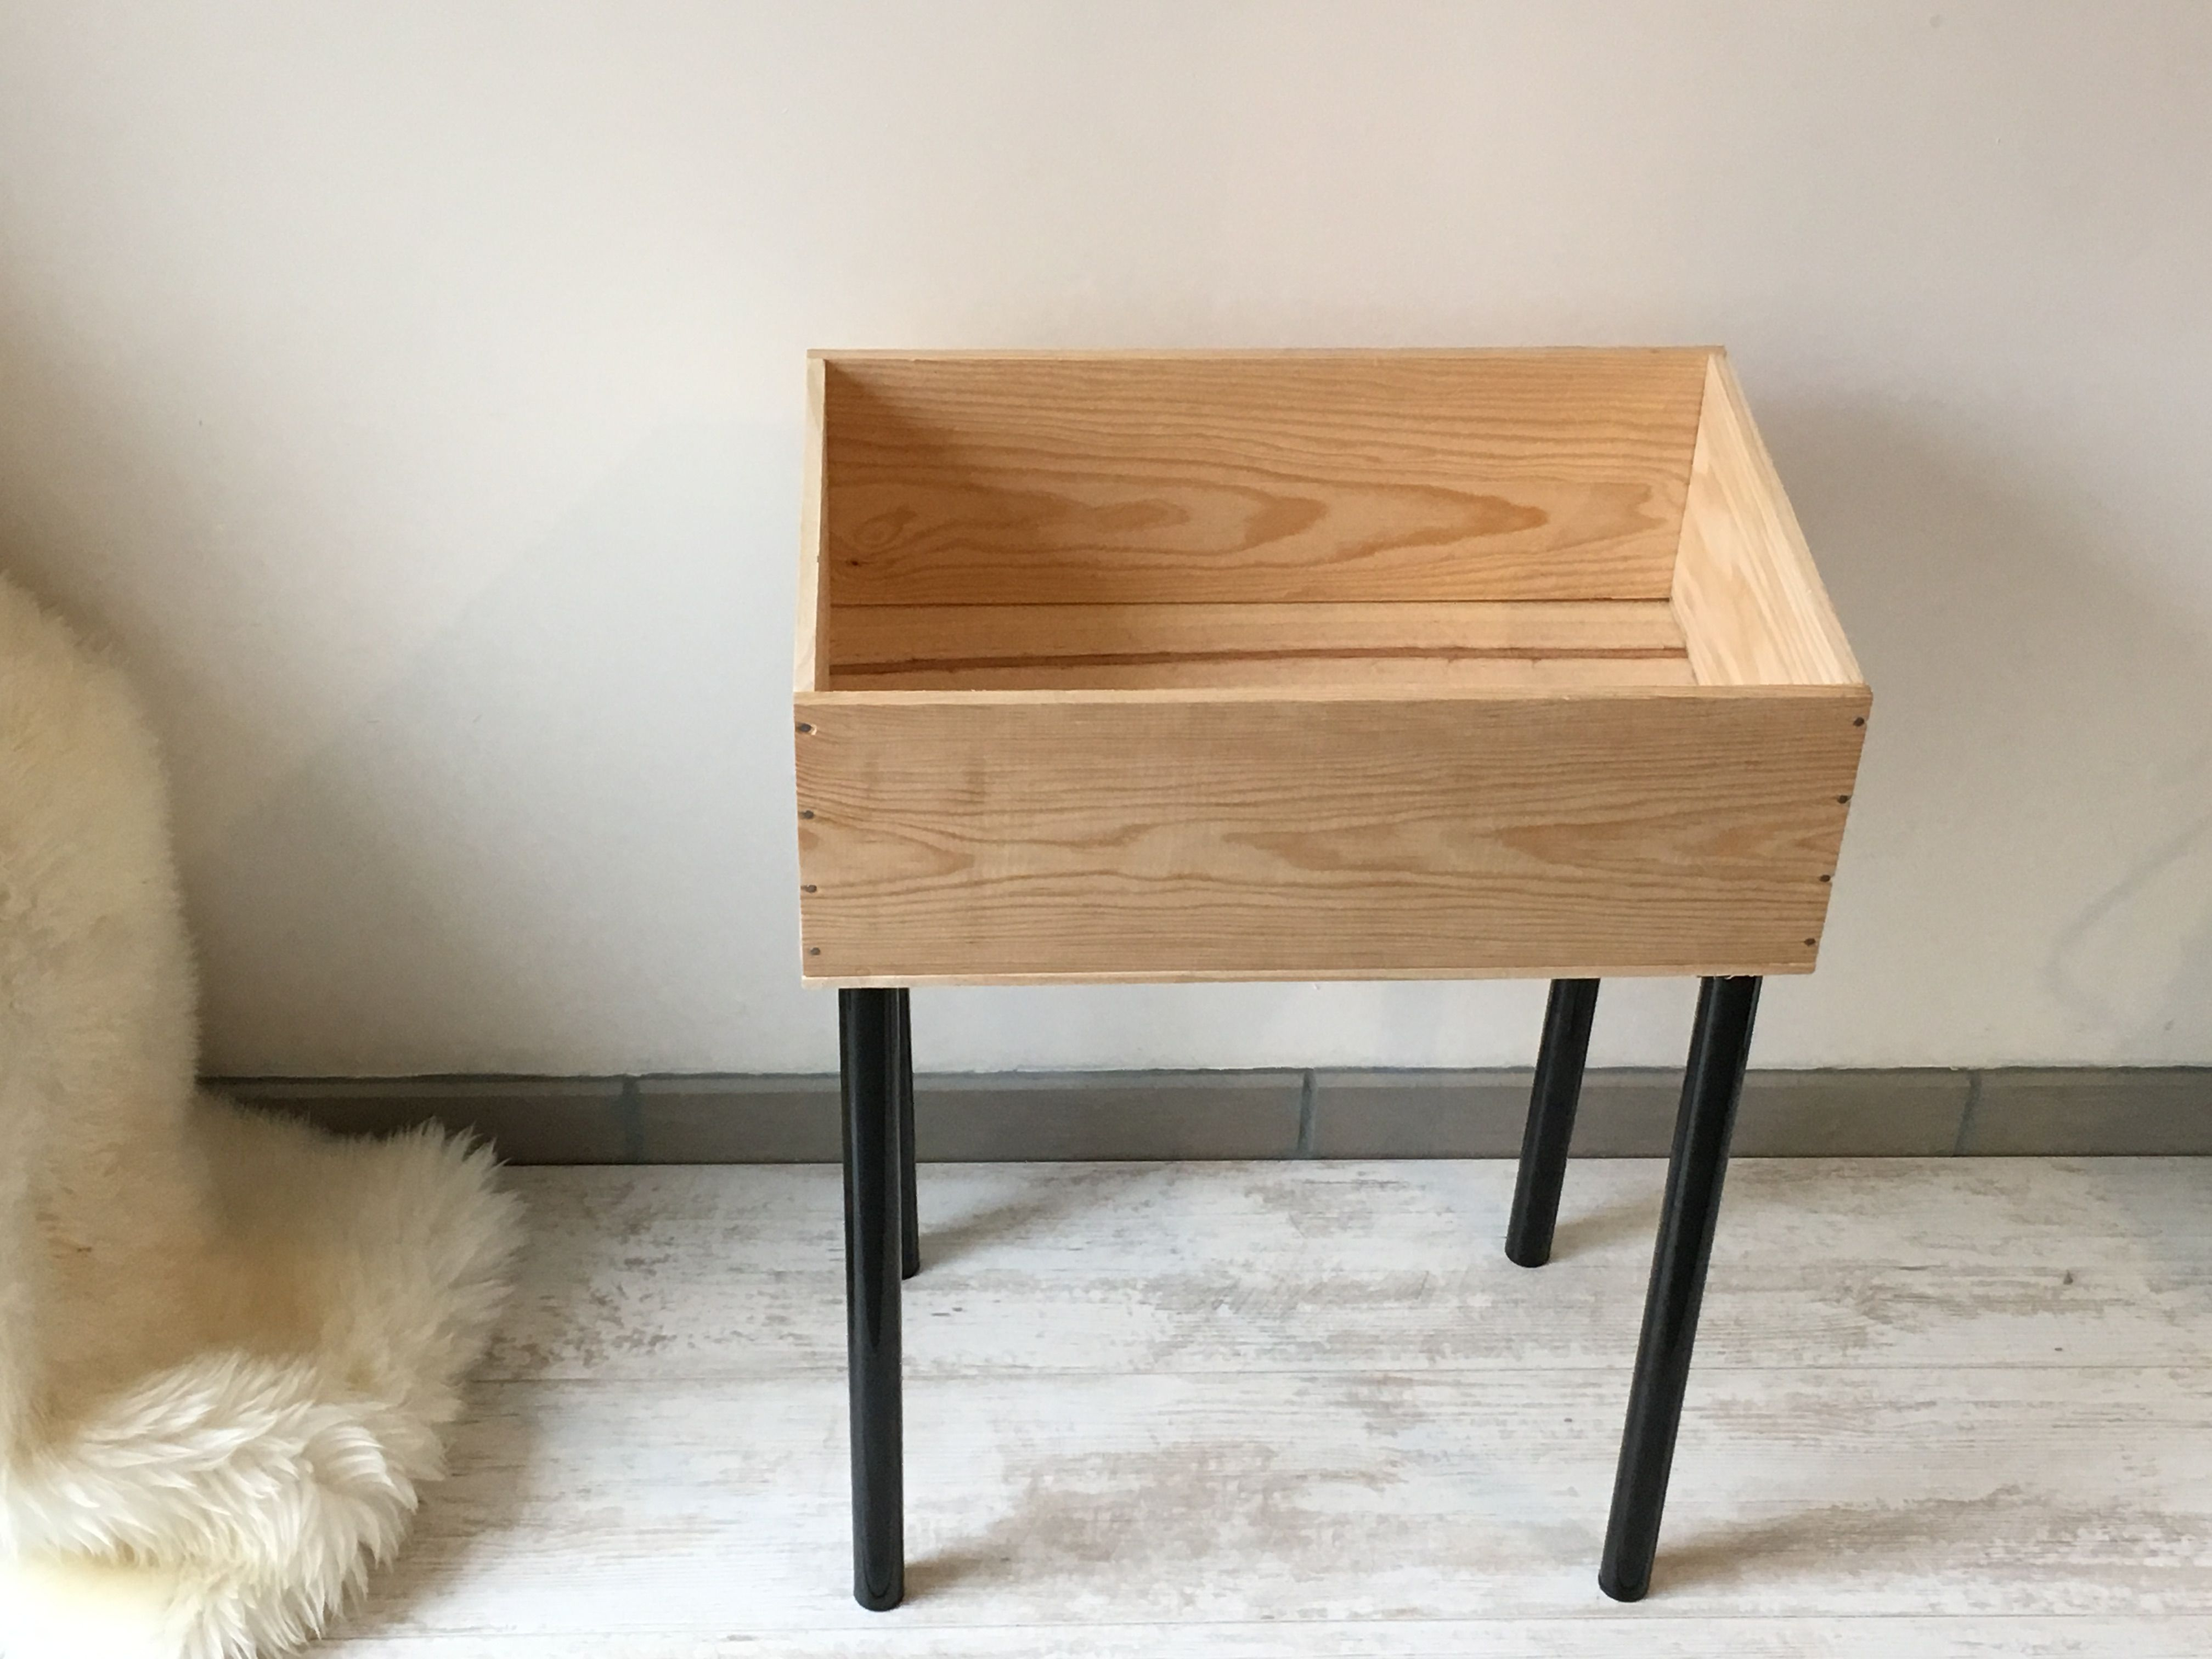 Diy recyclage caisse bois diy vin & upcycle pinterest home